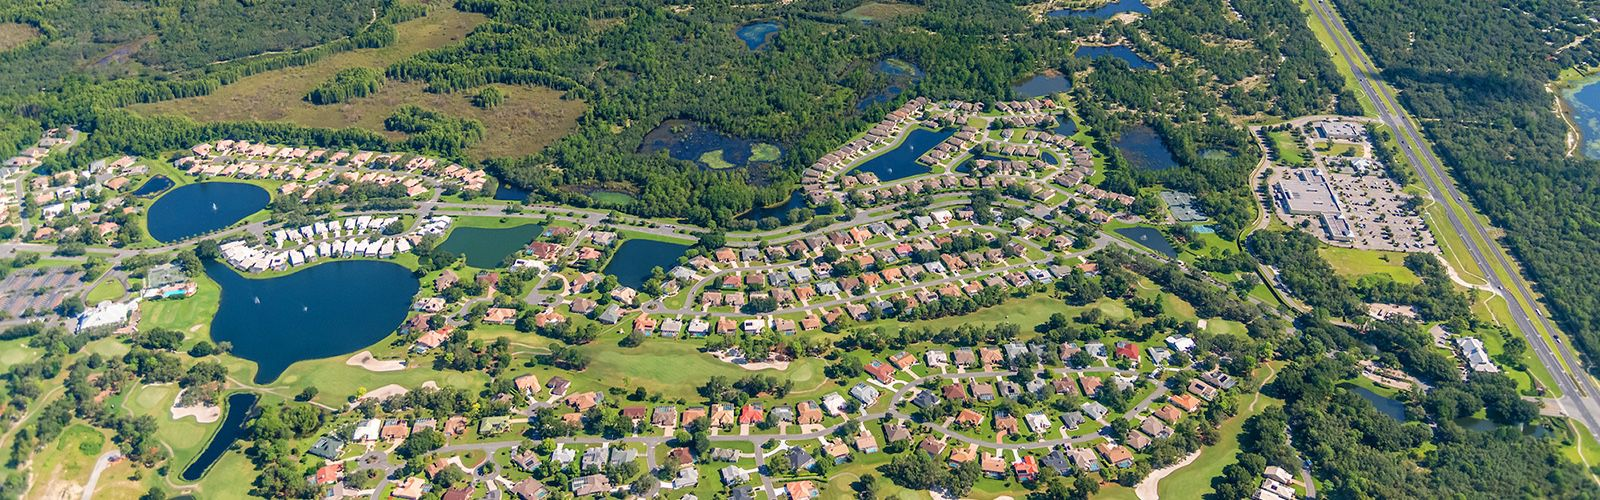 Walton buys residential land across North America including this property in Florida.